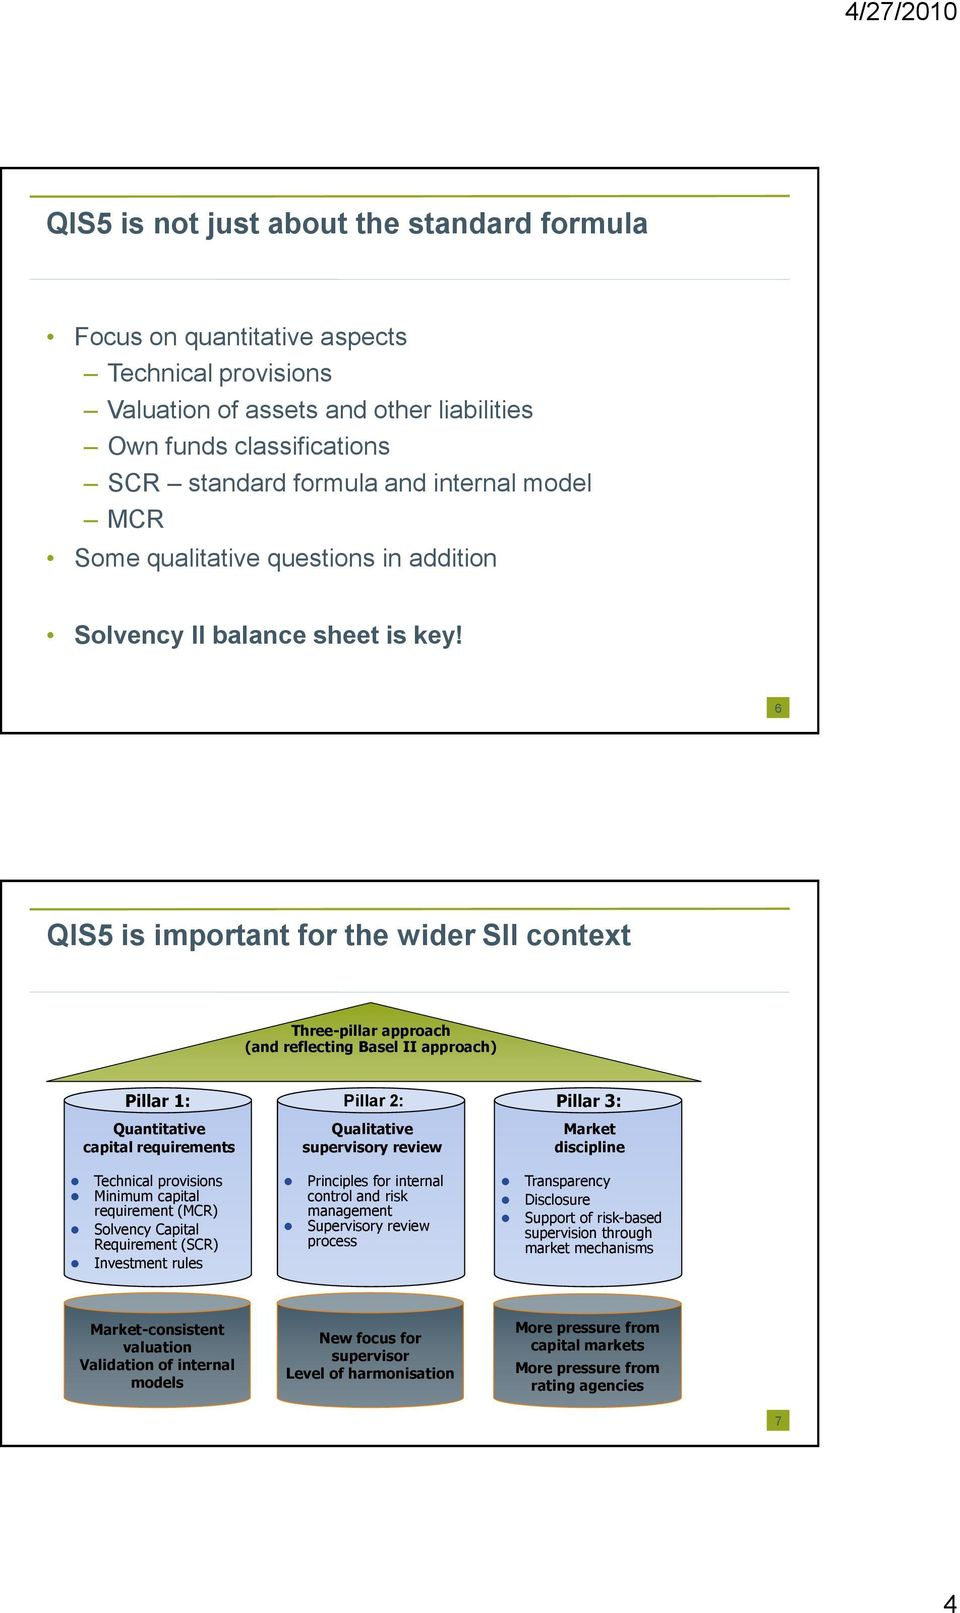 6 QIS5 is important for the wider SII context Three-pillar approach (and reflecting Basel II approach) Pillar 1: Pillar 2: Pillar 3: Quantitative capital requirements Technical provisions Minimum